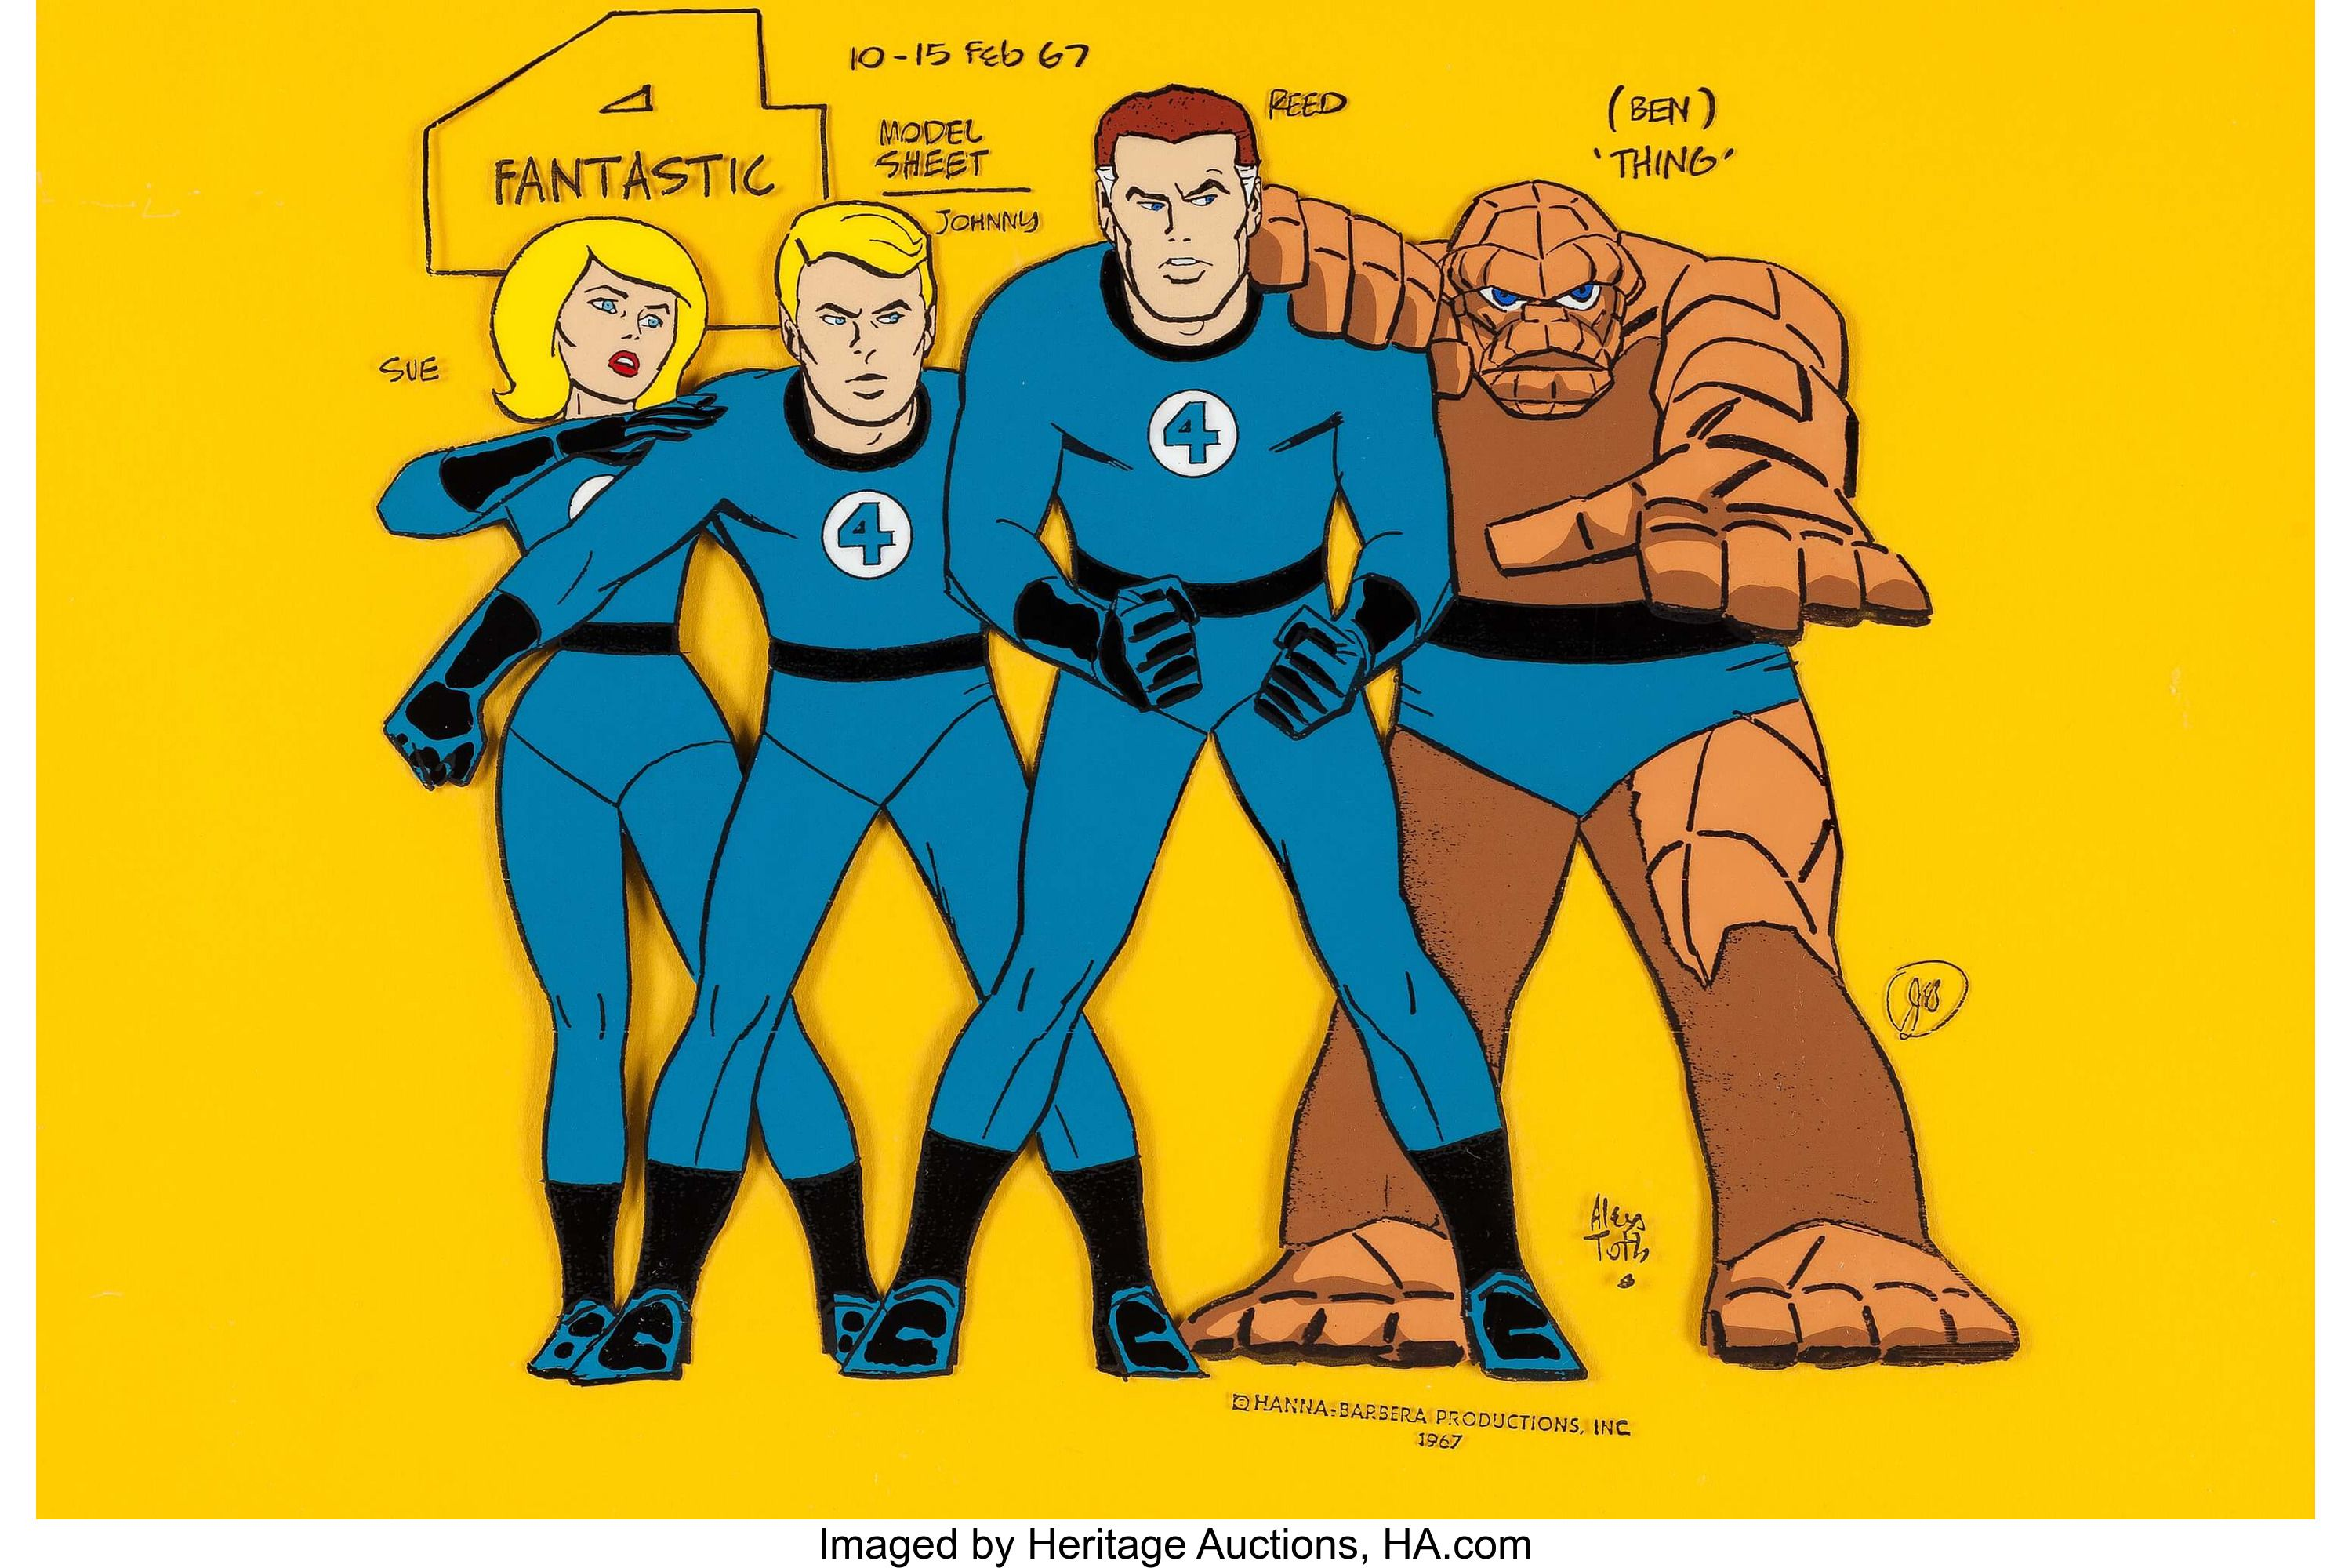 Fantastic Four Original Hand Painted Color Model Lot 11211 Heritage Auctions Fantastic Four Marvel Cartoons Cartoon Crazy